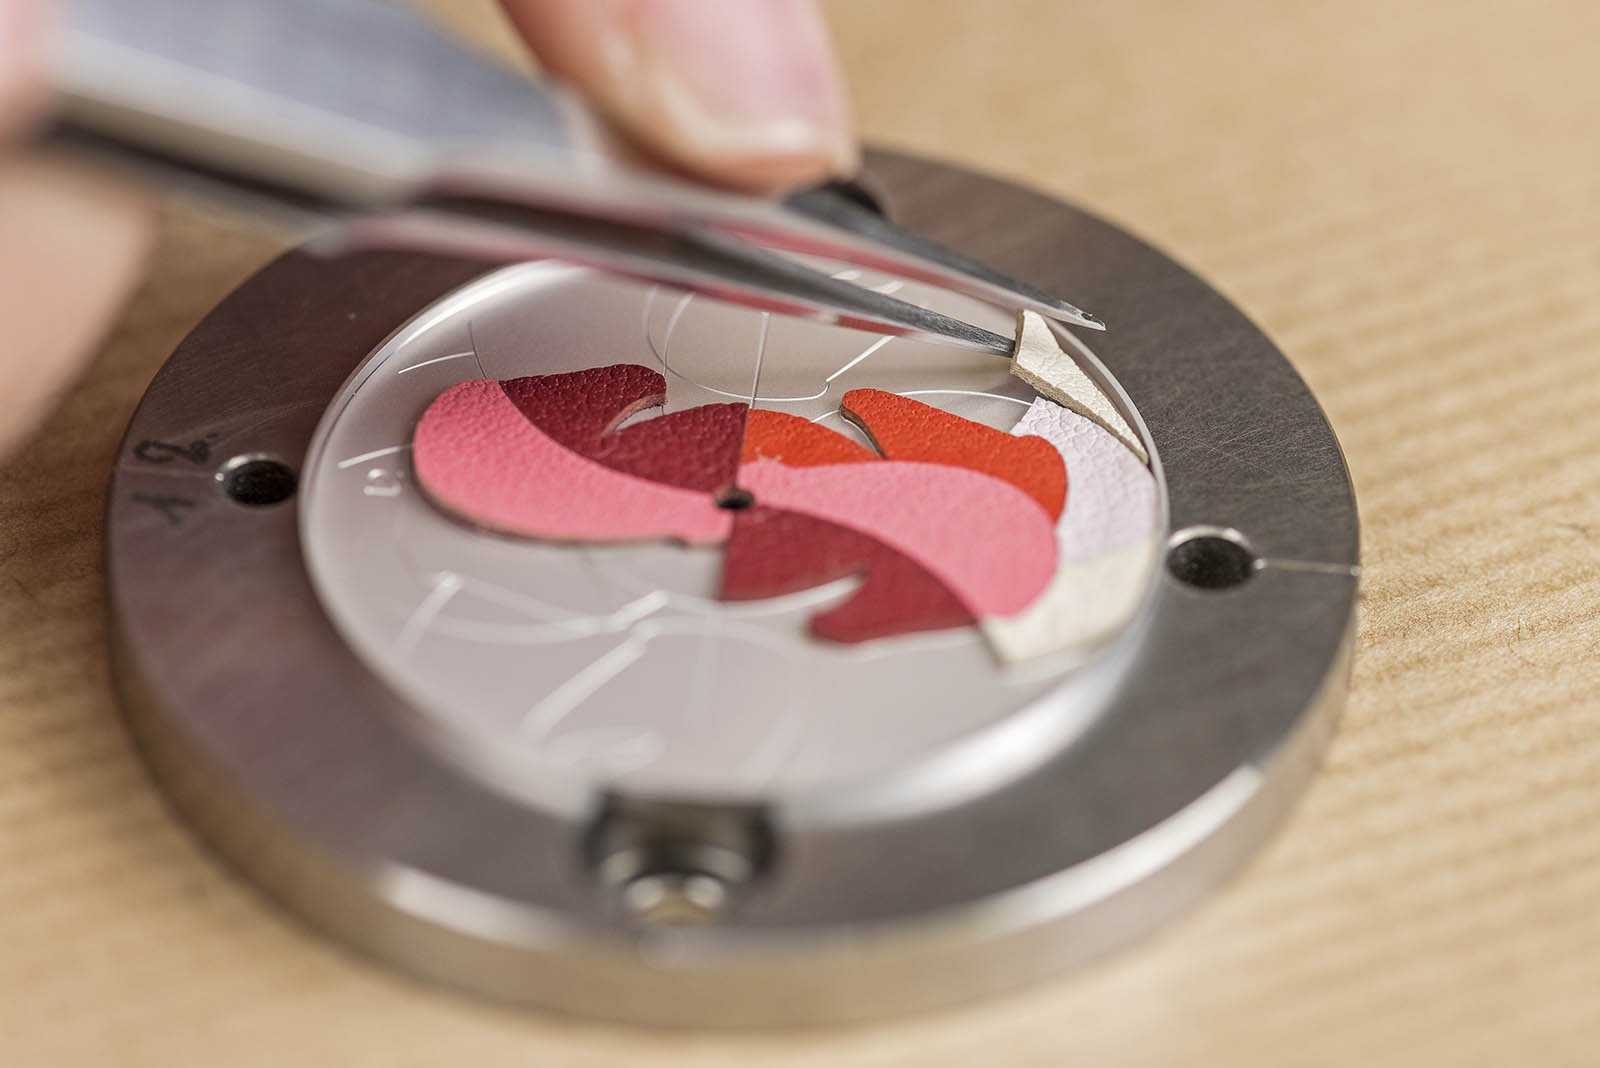 Baselworld 2019 Miniature Marquetry Art in Haute Horlogerie - Hermes - Leather - baselworld 2019 Baselworld 2019: Miniature Marquetry Art in Haute Horlogerie Baselworld 2019 Miniature Marquetry Art in Haute Horlogerie Hermes Leather